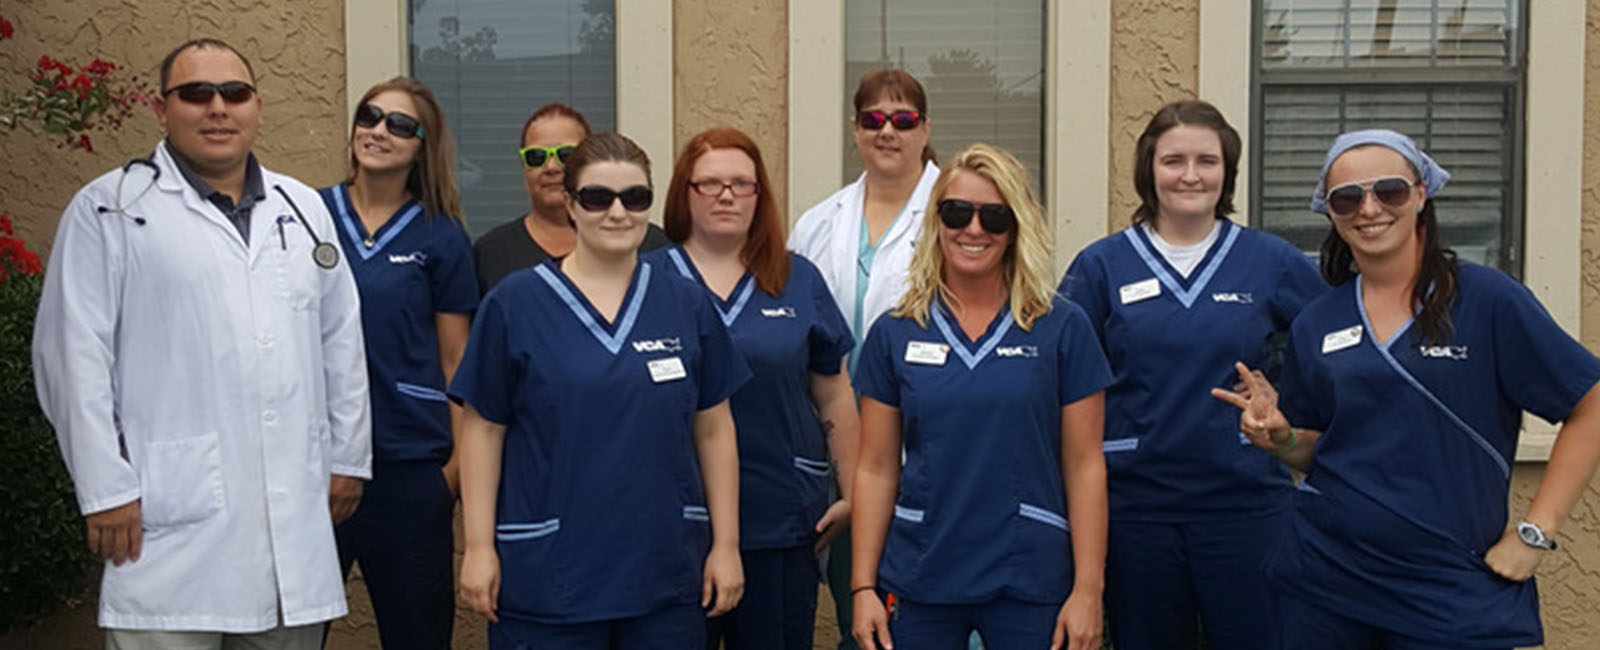 Homepage Team Picture of VCA Woodland Broken Arrow Animal Hospital